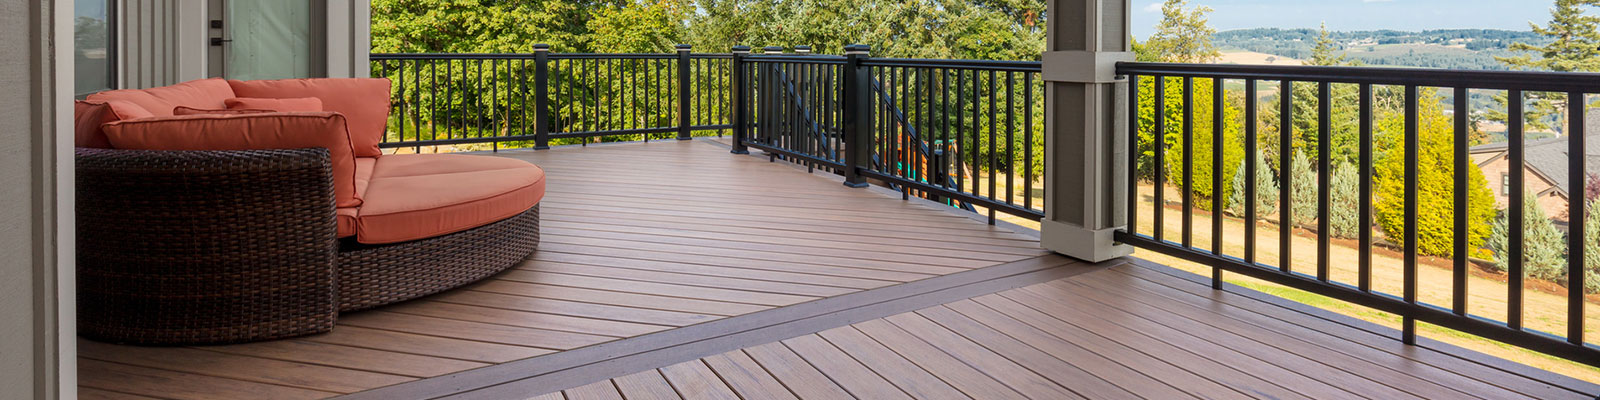 GNH is here to help with your porch, patio, deck and railing needs!